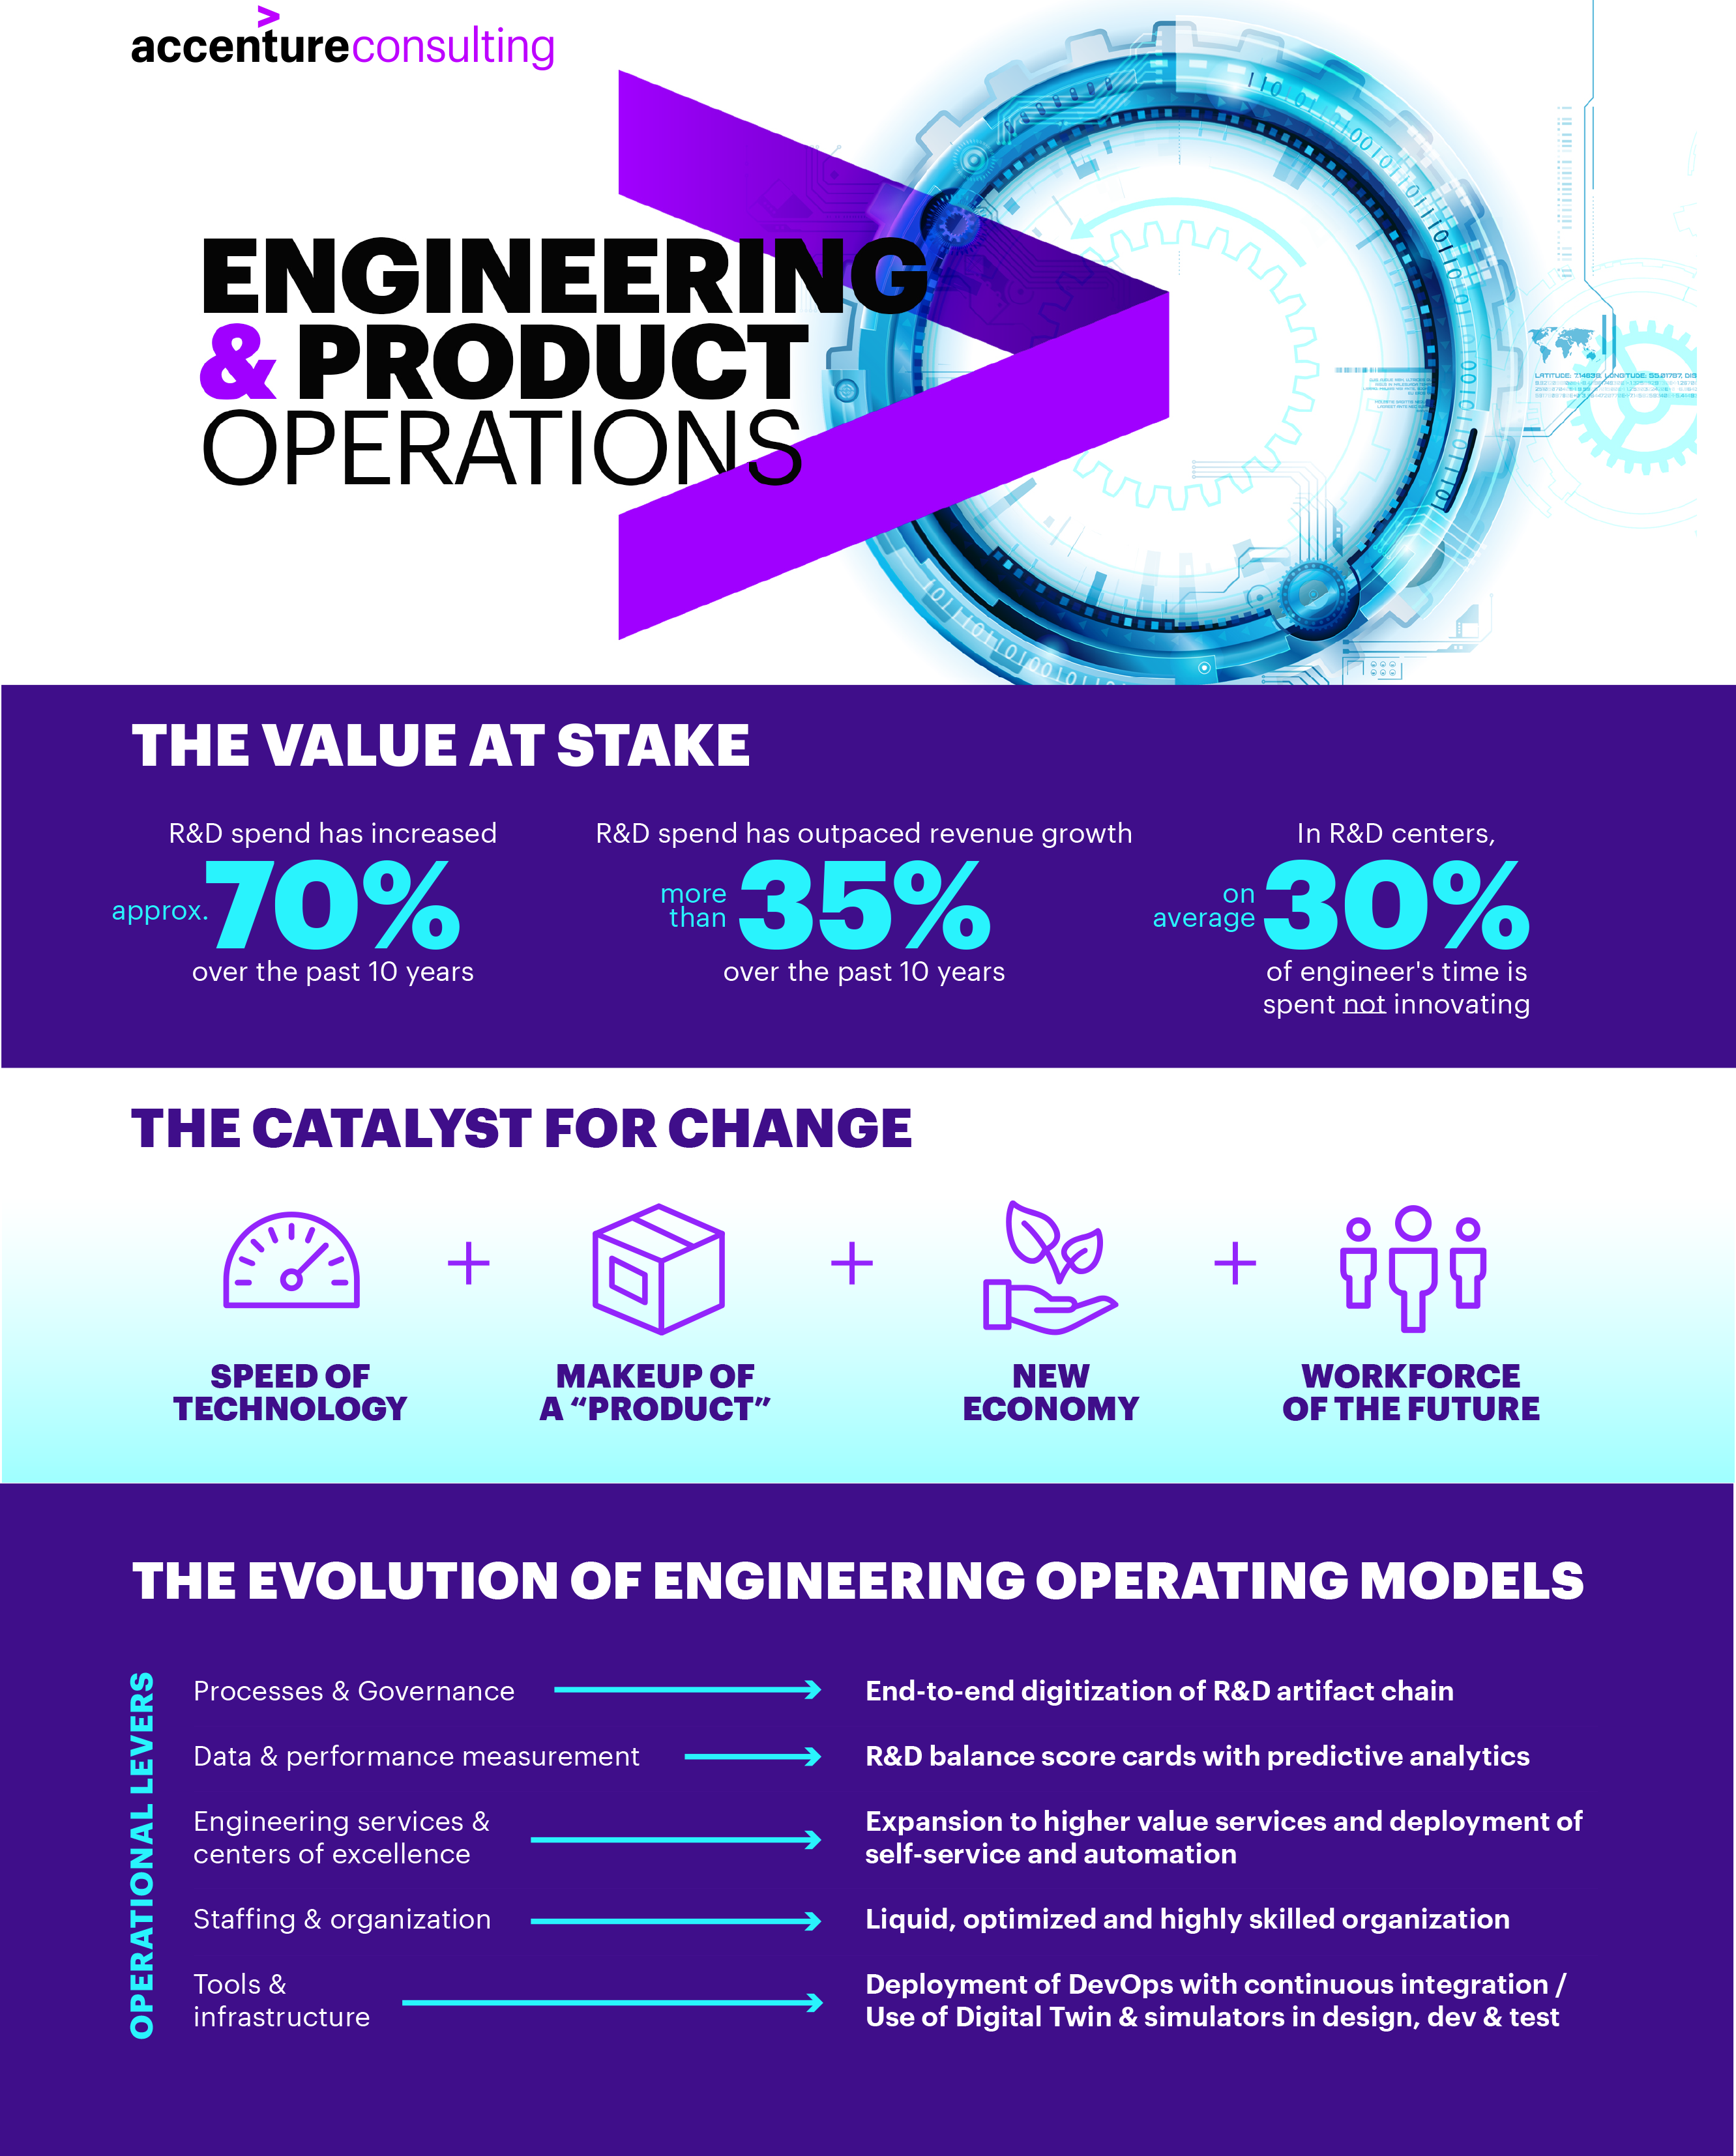 Download the full article. Engineering & Product Operations. This opens a new window.